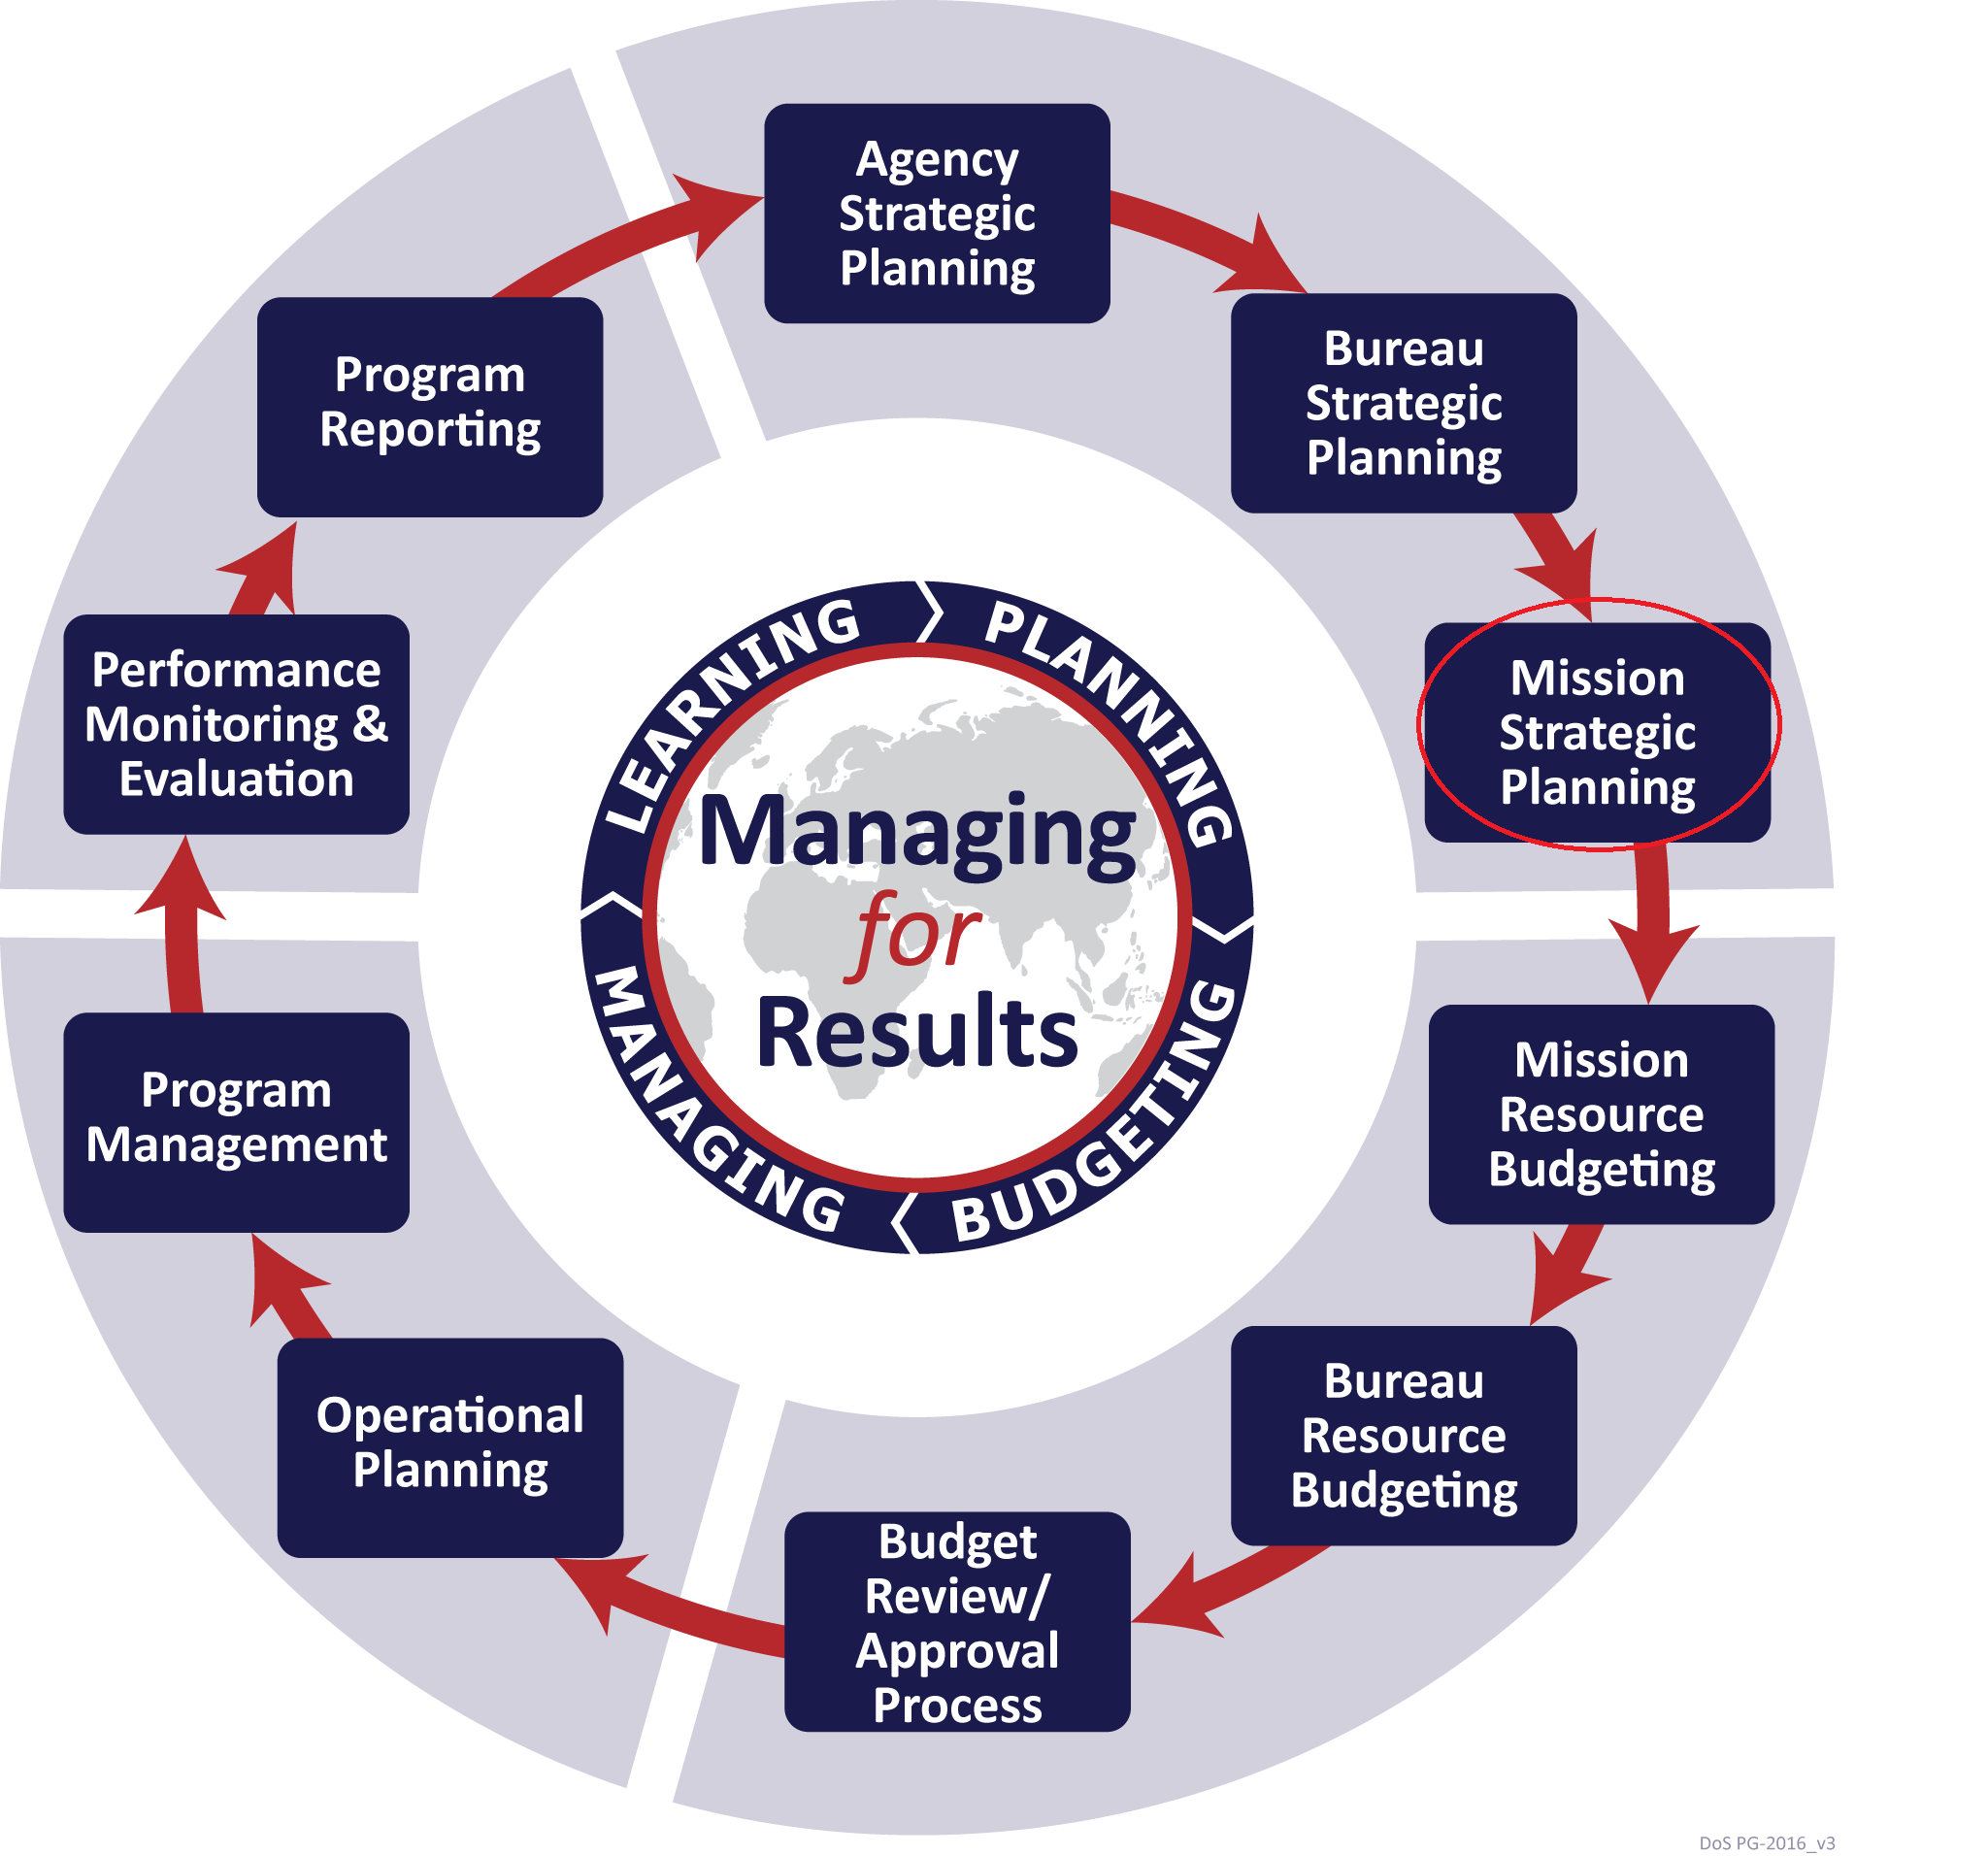 Managing for Results circular flow chart. Planning quadrant: Strategic Planning; Bureau Strategic Planning; Mission Strategic Planning (circled). Budgeting quadrant: Mission Resource Budgeting; Bureau Resource Budgeting; Budget Review/Approval Process. Managing quadrant: Operational Planning; Program Management. Learning quadrant: Performance Monitoring & Evaluation; Program Reporting. [State Department Image] 7/9/2018